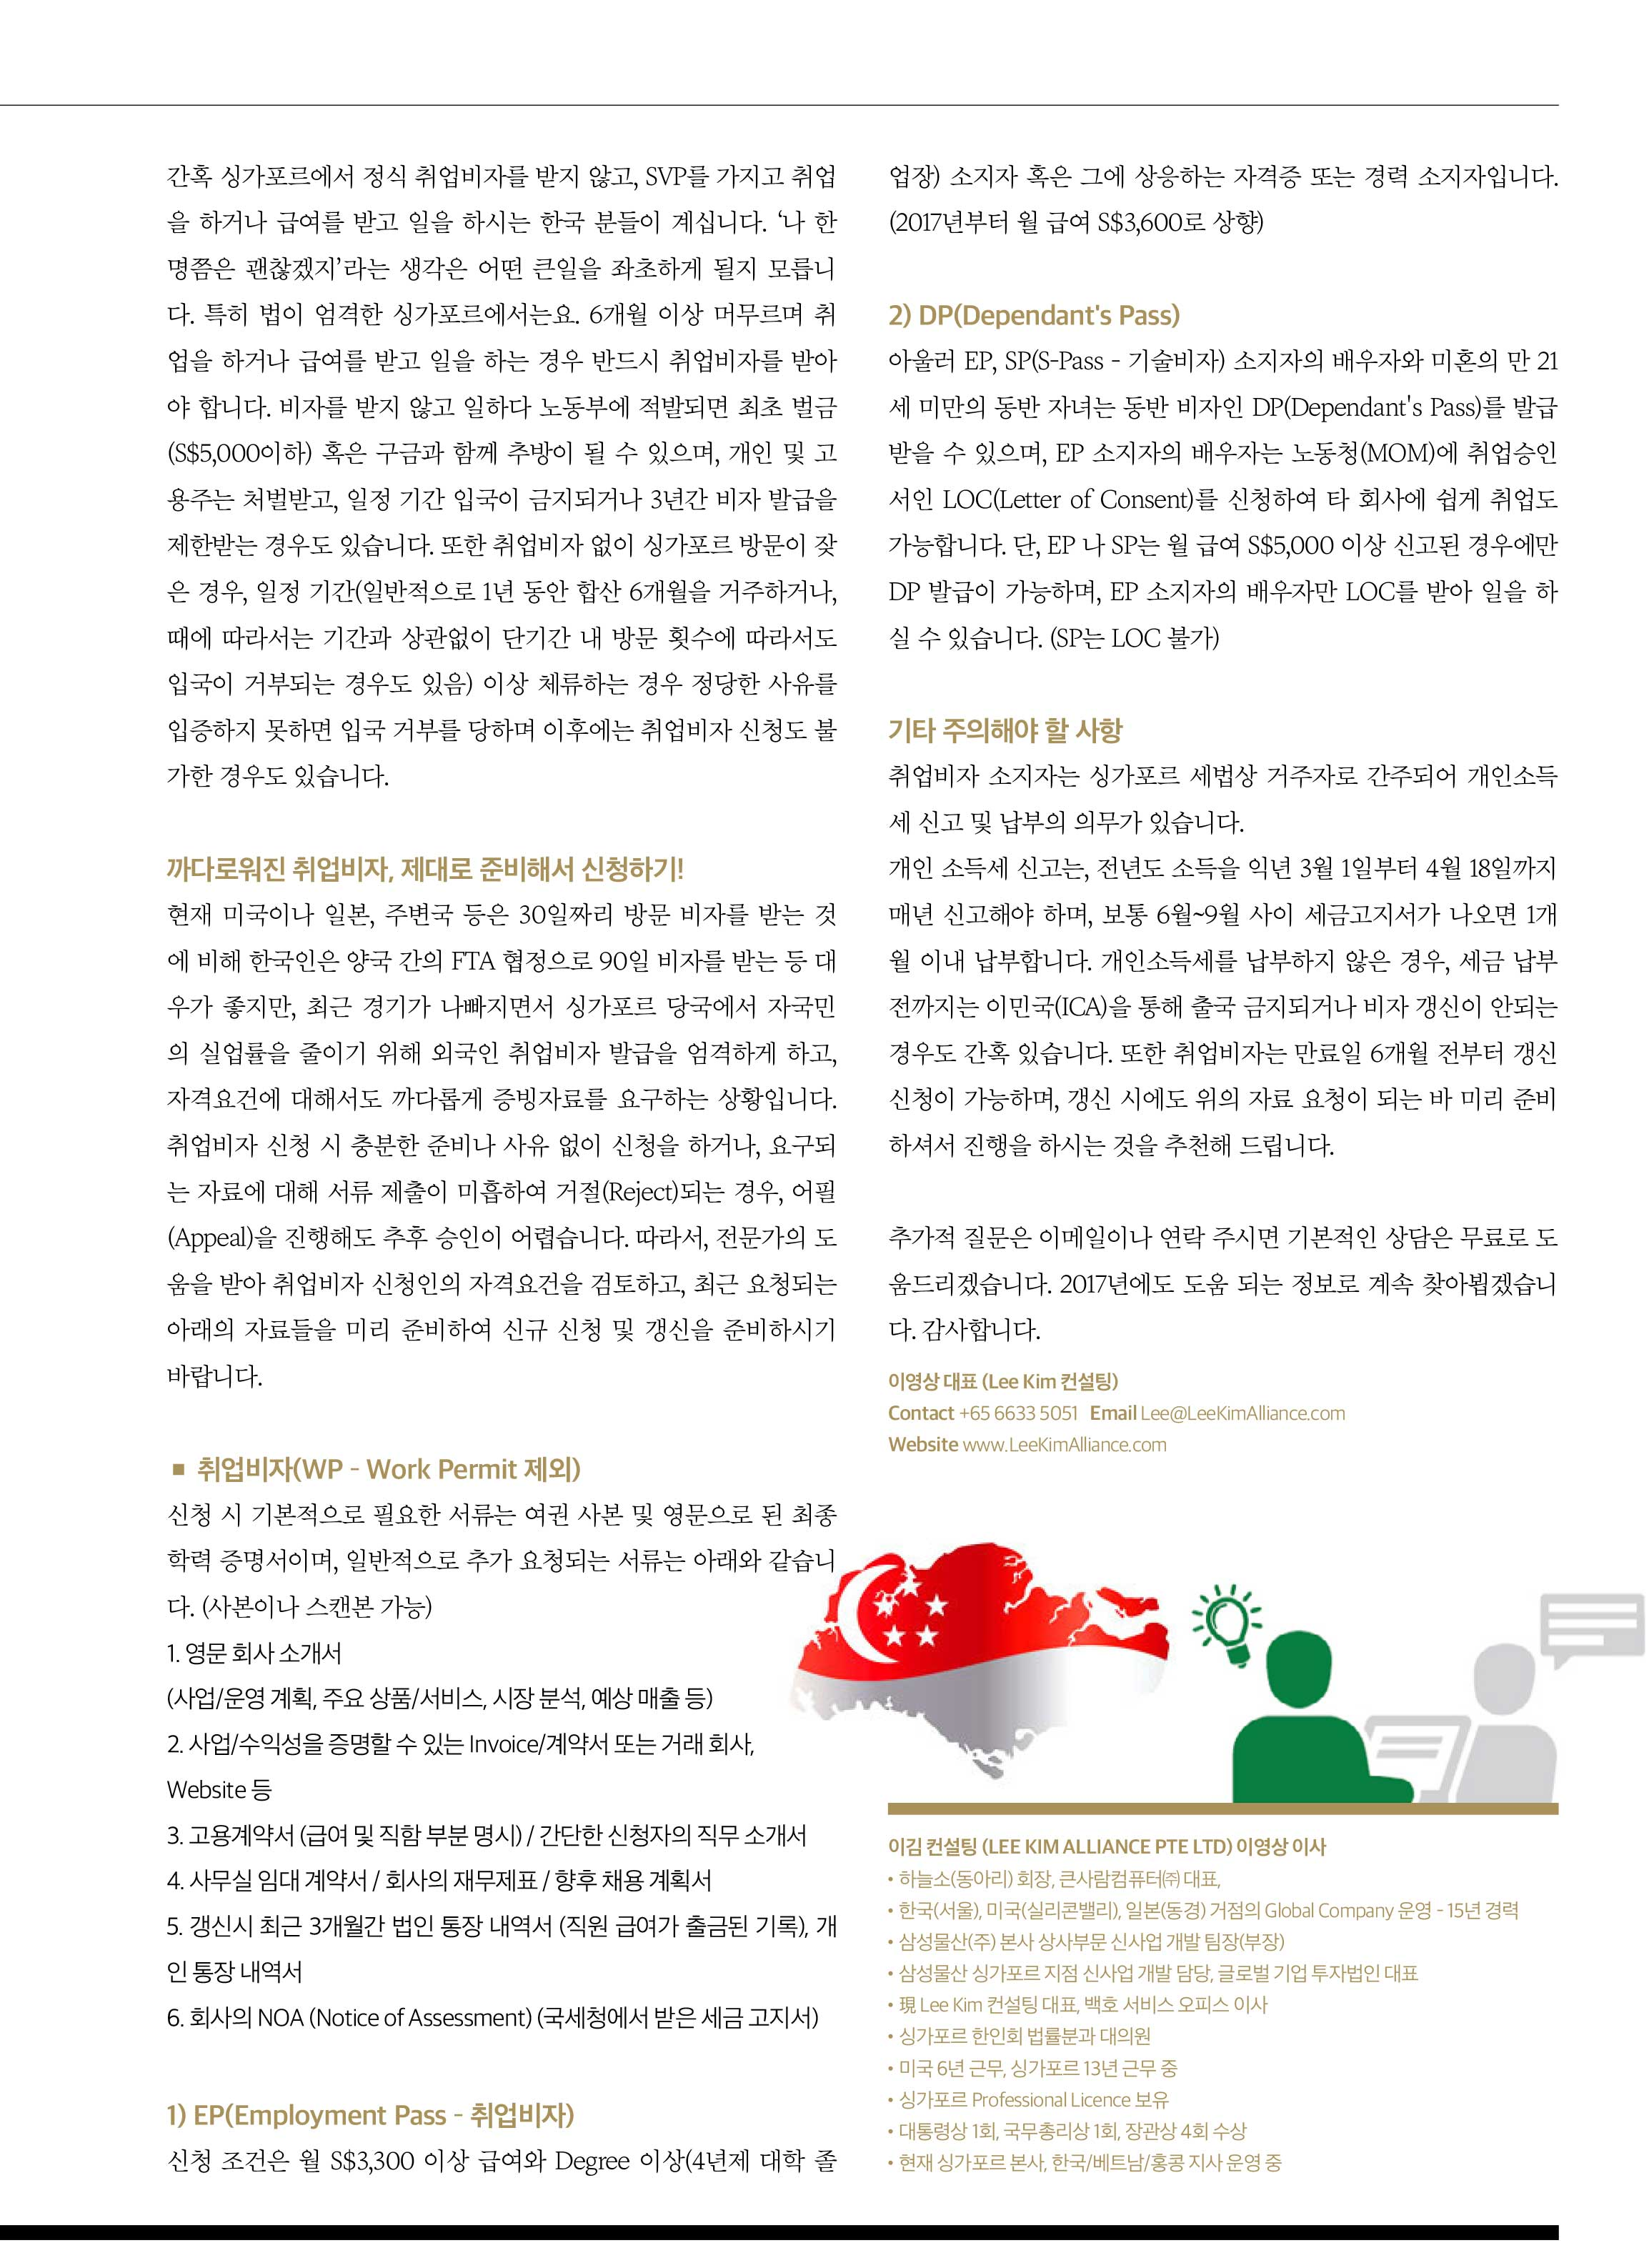 LEE_KIM_ALLIANCE_HANURI_2016_12_page02.jpg